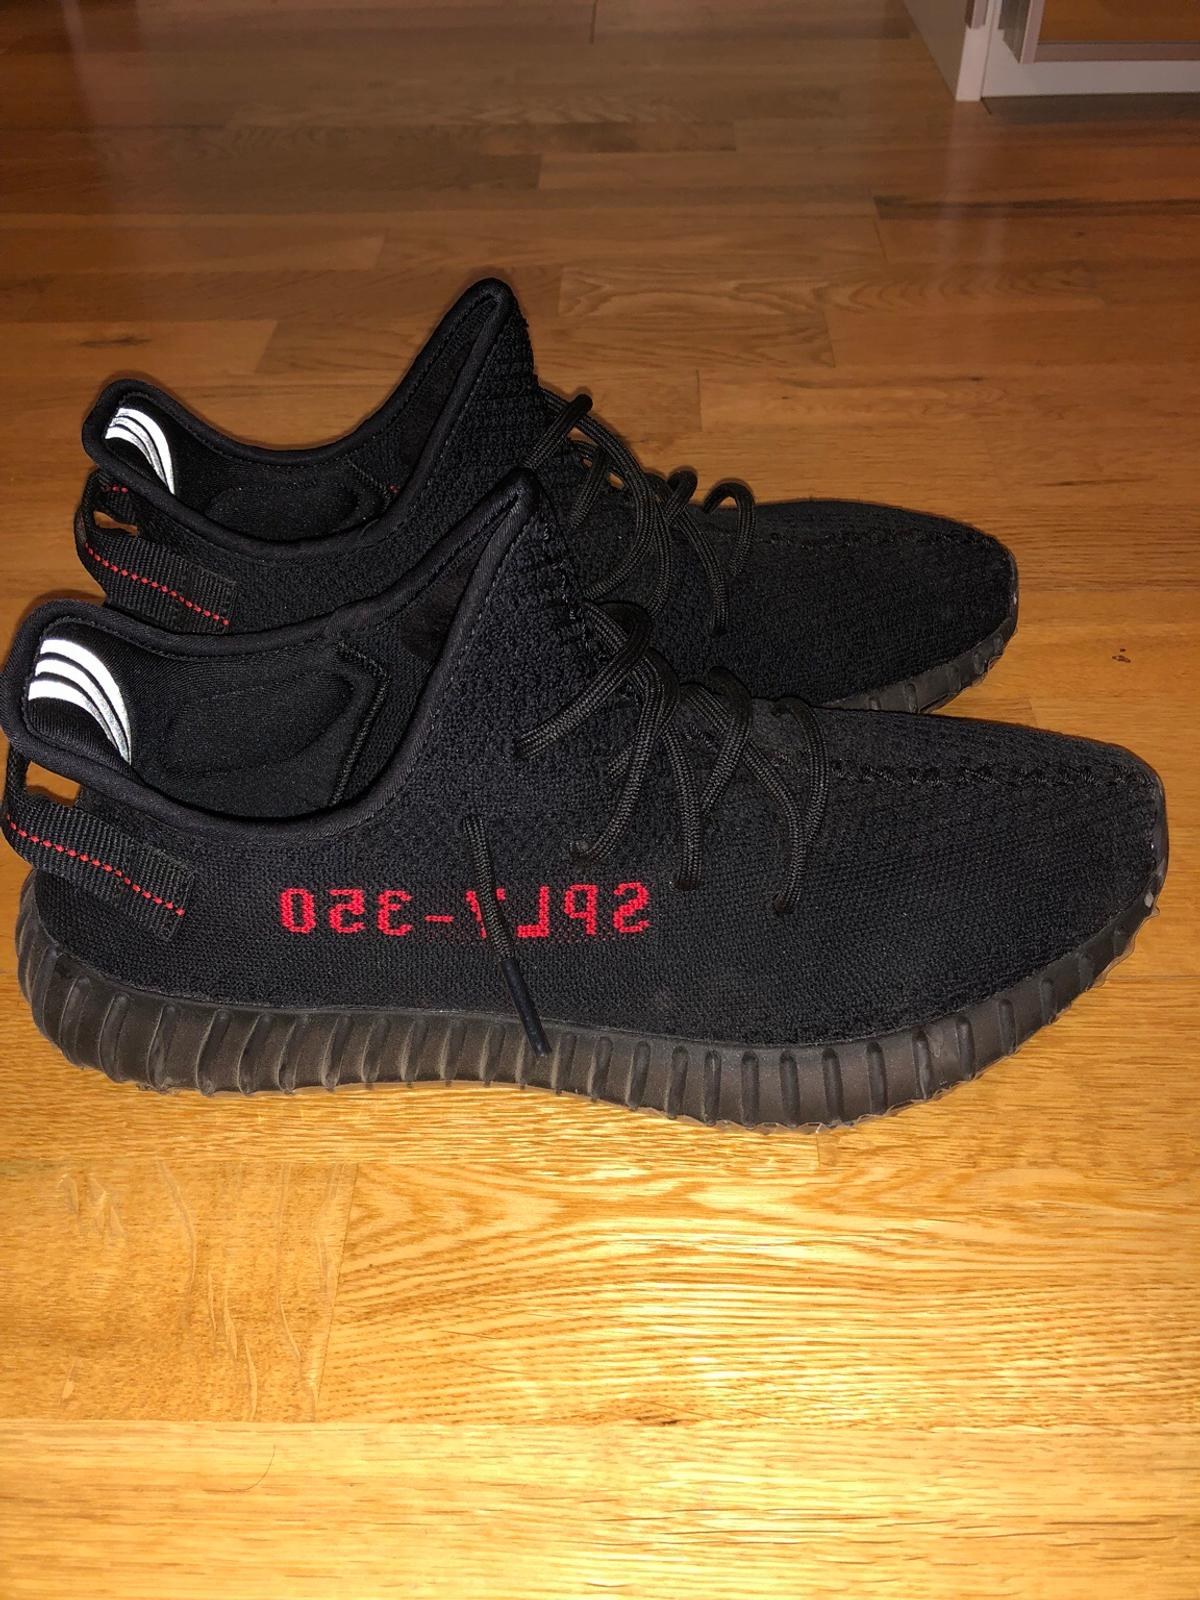 c2448b53c5d88 Yeezy Boost 350 V2 Bred in 14172 Stockholm for US 549.00 for sale ...